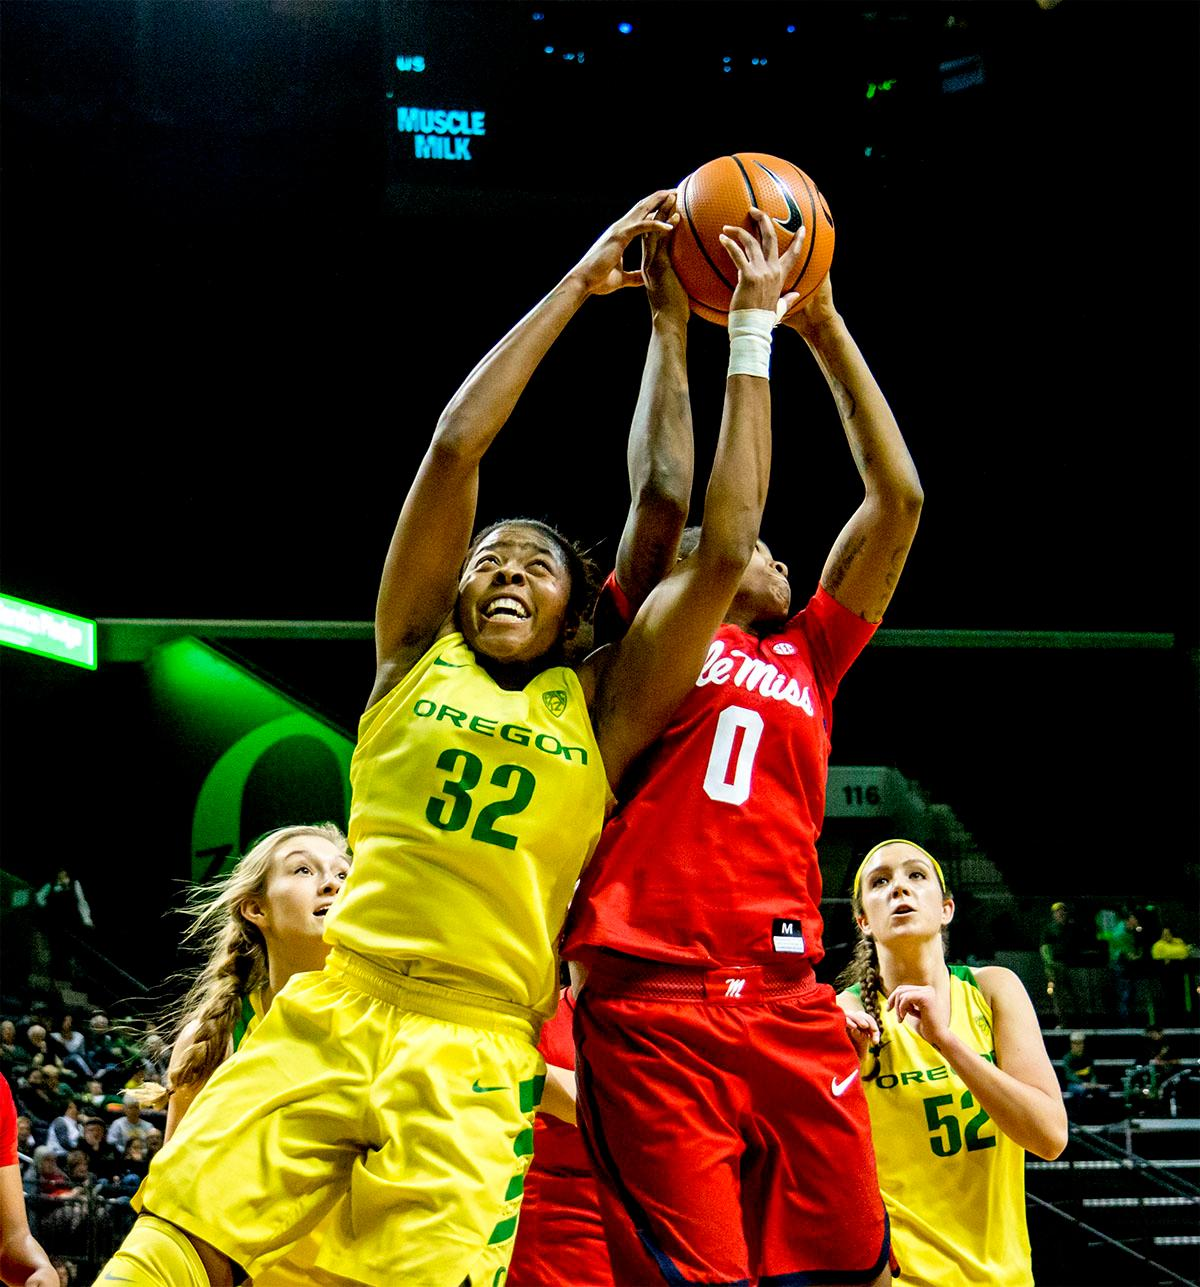 The Duck's Oti Gildon (#32) jumps to try and catch the rebound. The Duck's Sabrina Ionescu (#20) is introduced at the start of the game against the Ole Miss Rebels. The Oregon Ducks womens basketball team defeated the Ole Miss Rebels 90-46 on Sunday at Matthew Knight Arena. Sabrina Ionescu tied the NCAA record for triple-doubles, finishing the game with 21 points, 14 assists, and 11 rebounds. Ruthy Hebard added 16 points, Satou Sabally added 12, and both Lexi Bando and Maite Cazorla scored 10 each. The Ducks will next face off against Texas A&M on Thursday Dec. 21 and Hawaii on Friday Dec. 22 in Las Vegas for Duel in the Desert before the start of Pac-12 games. Photo by August Frank, Oregon News Lab